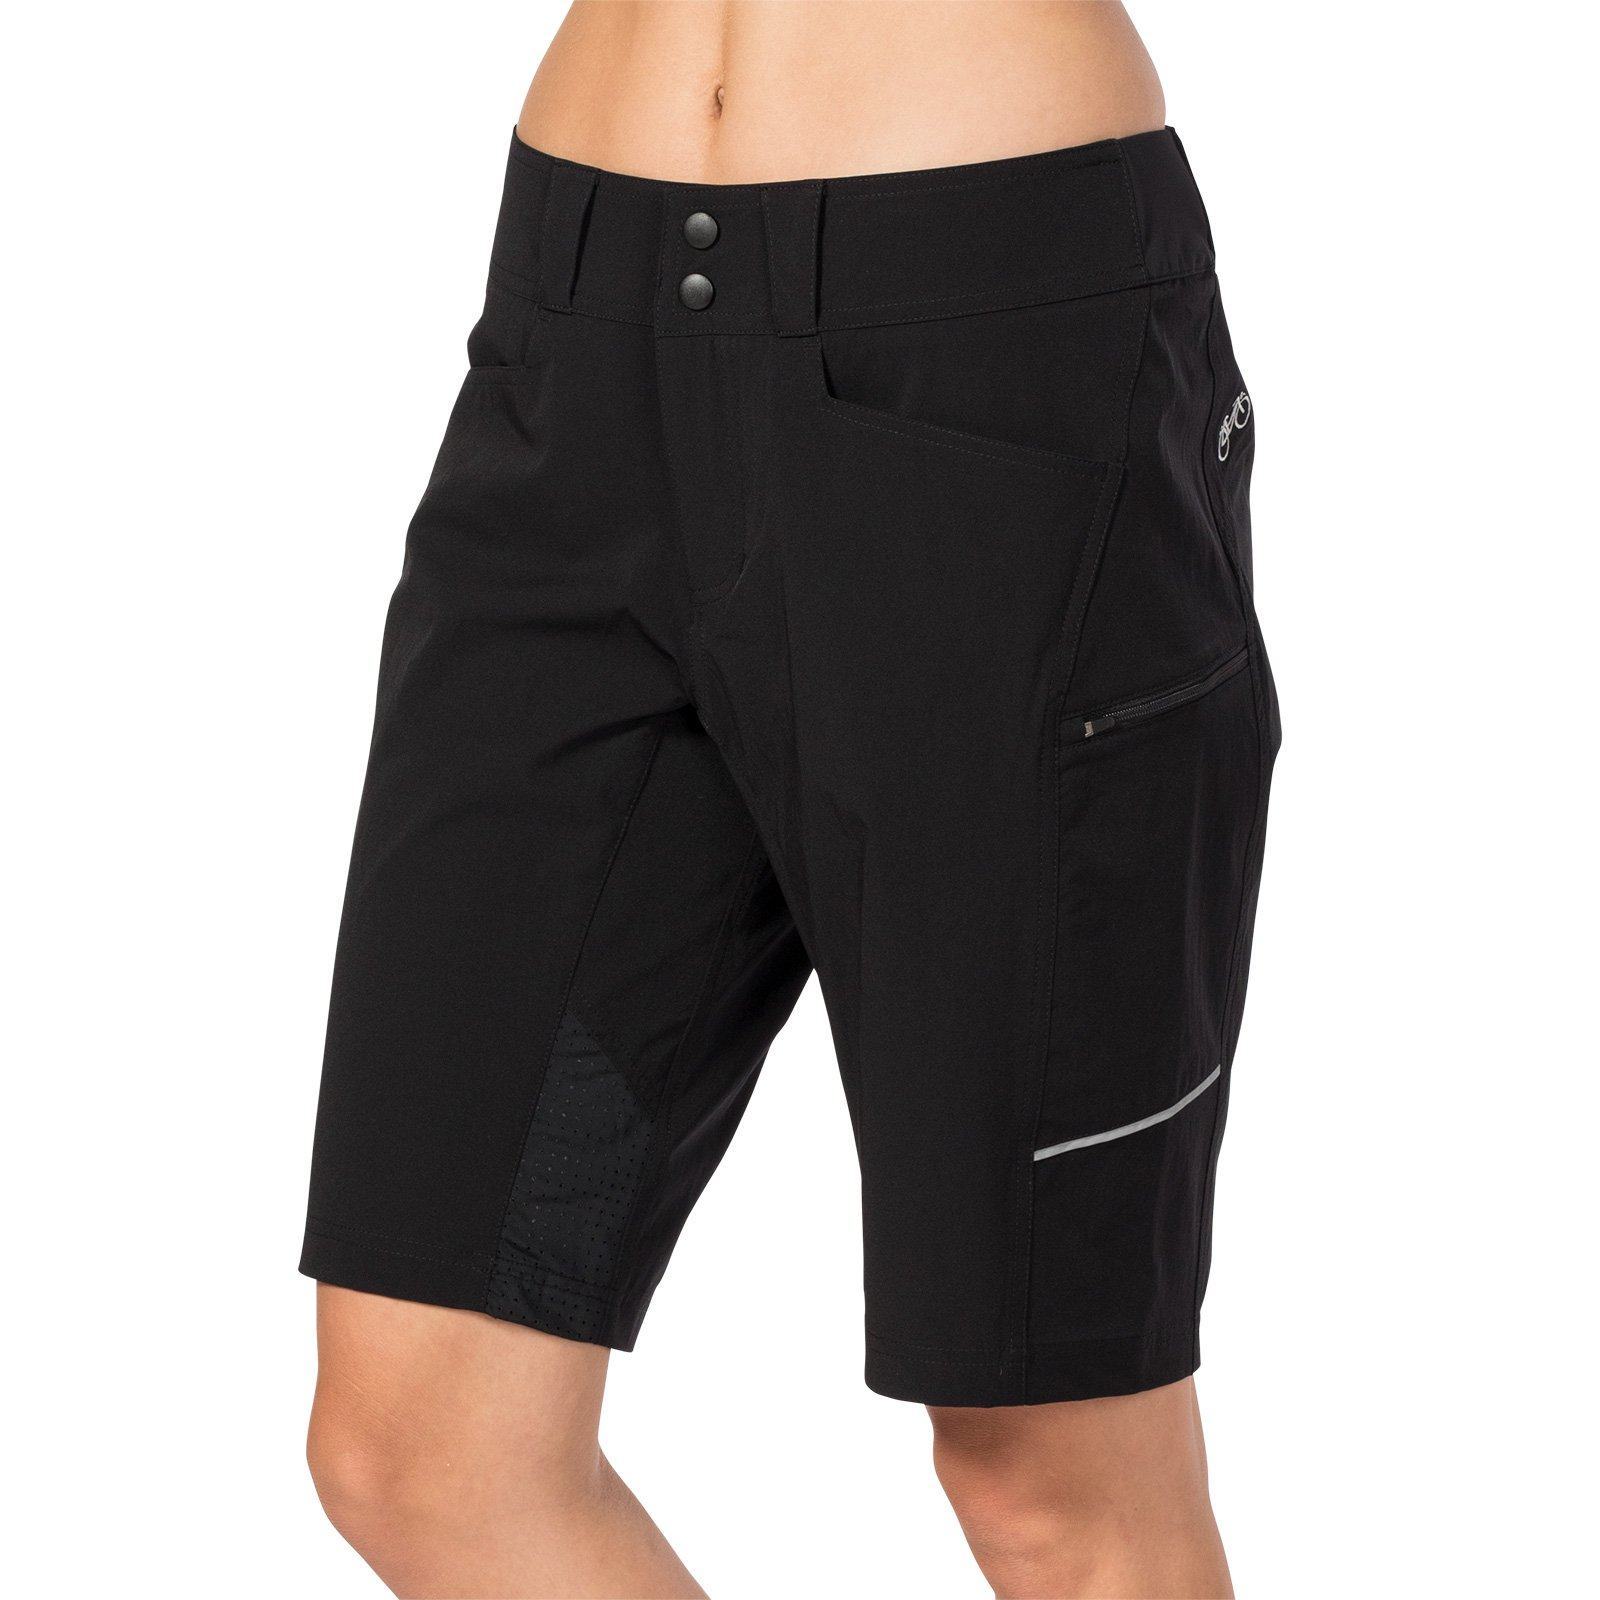 Terry Women's Metro Cycling Short Relaxed - Completely Restyled for 2018 - Black - Small